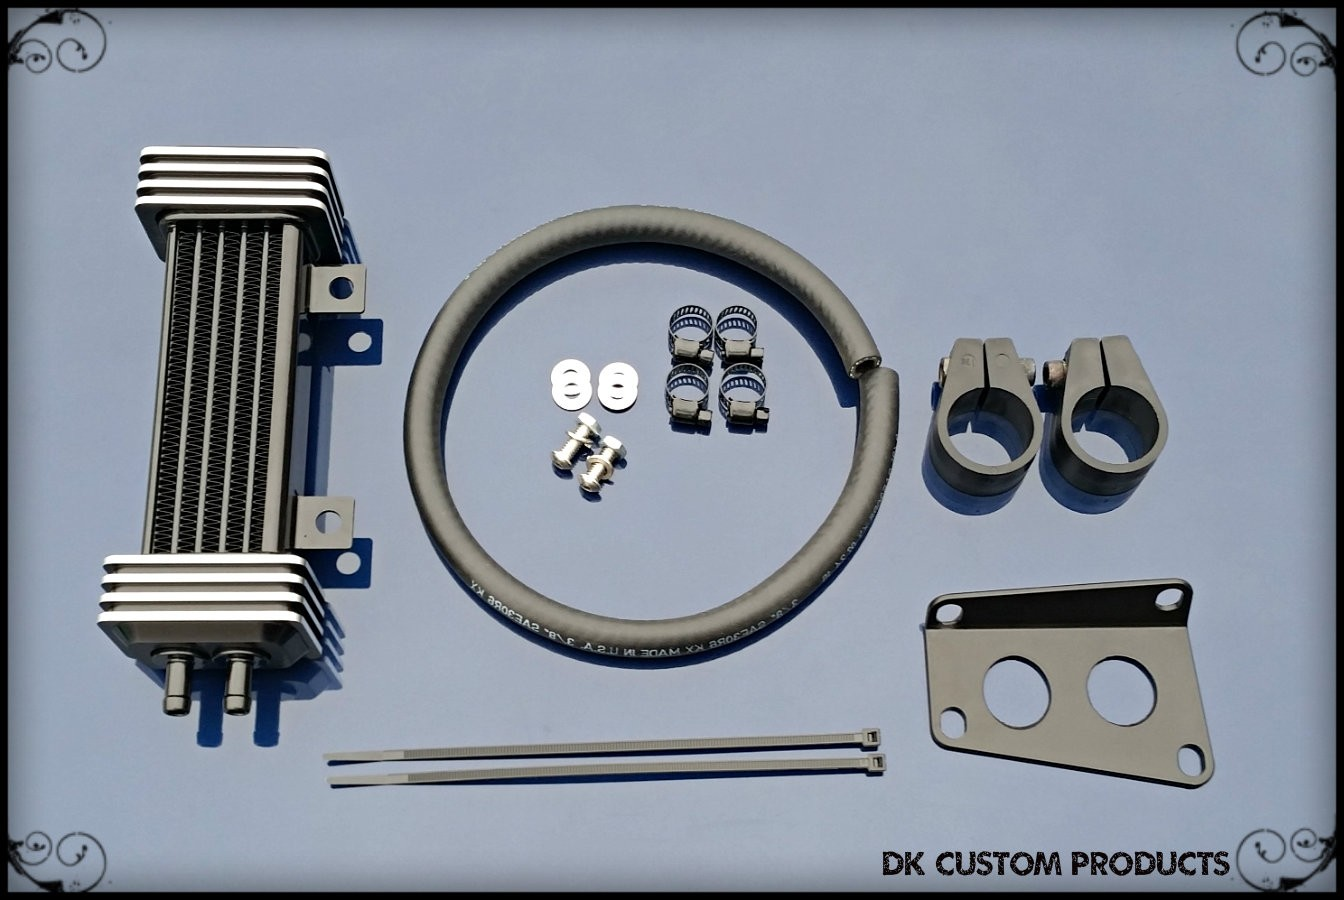 Dual-Cool Oil Cooler for 2009-Up Touring Models Incl. Twin Cool Harley-Davidson Motorcycles DK Custom High Flow Performance Softail Touring Trike Freewheeler Big Twin Evo Milwaukee Eight Sportster  Cooler Running Motor Jagg HD Black